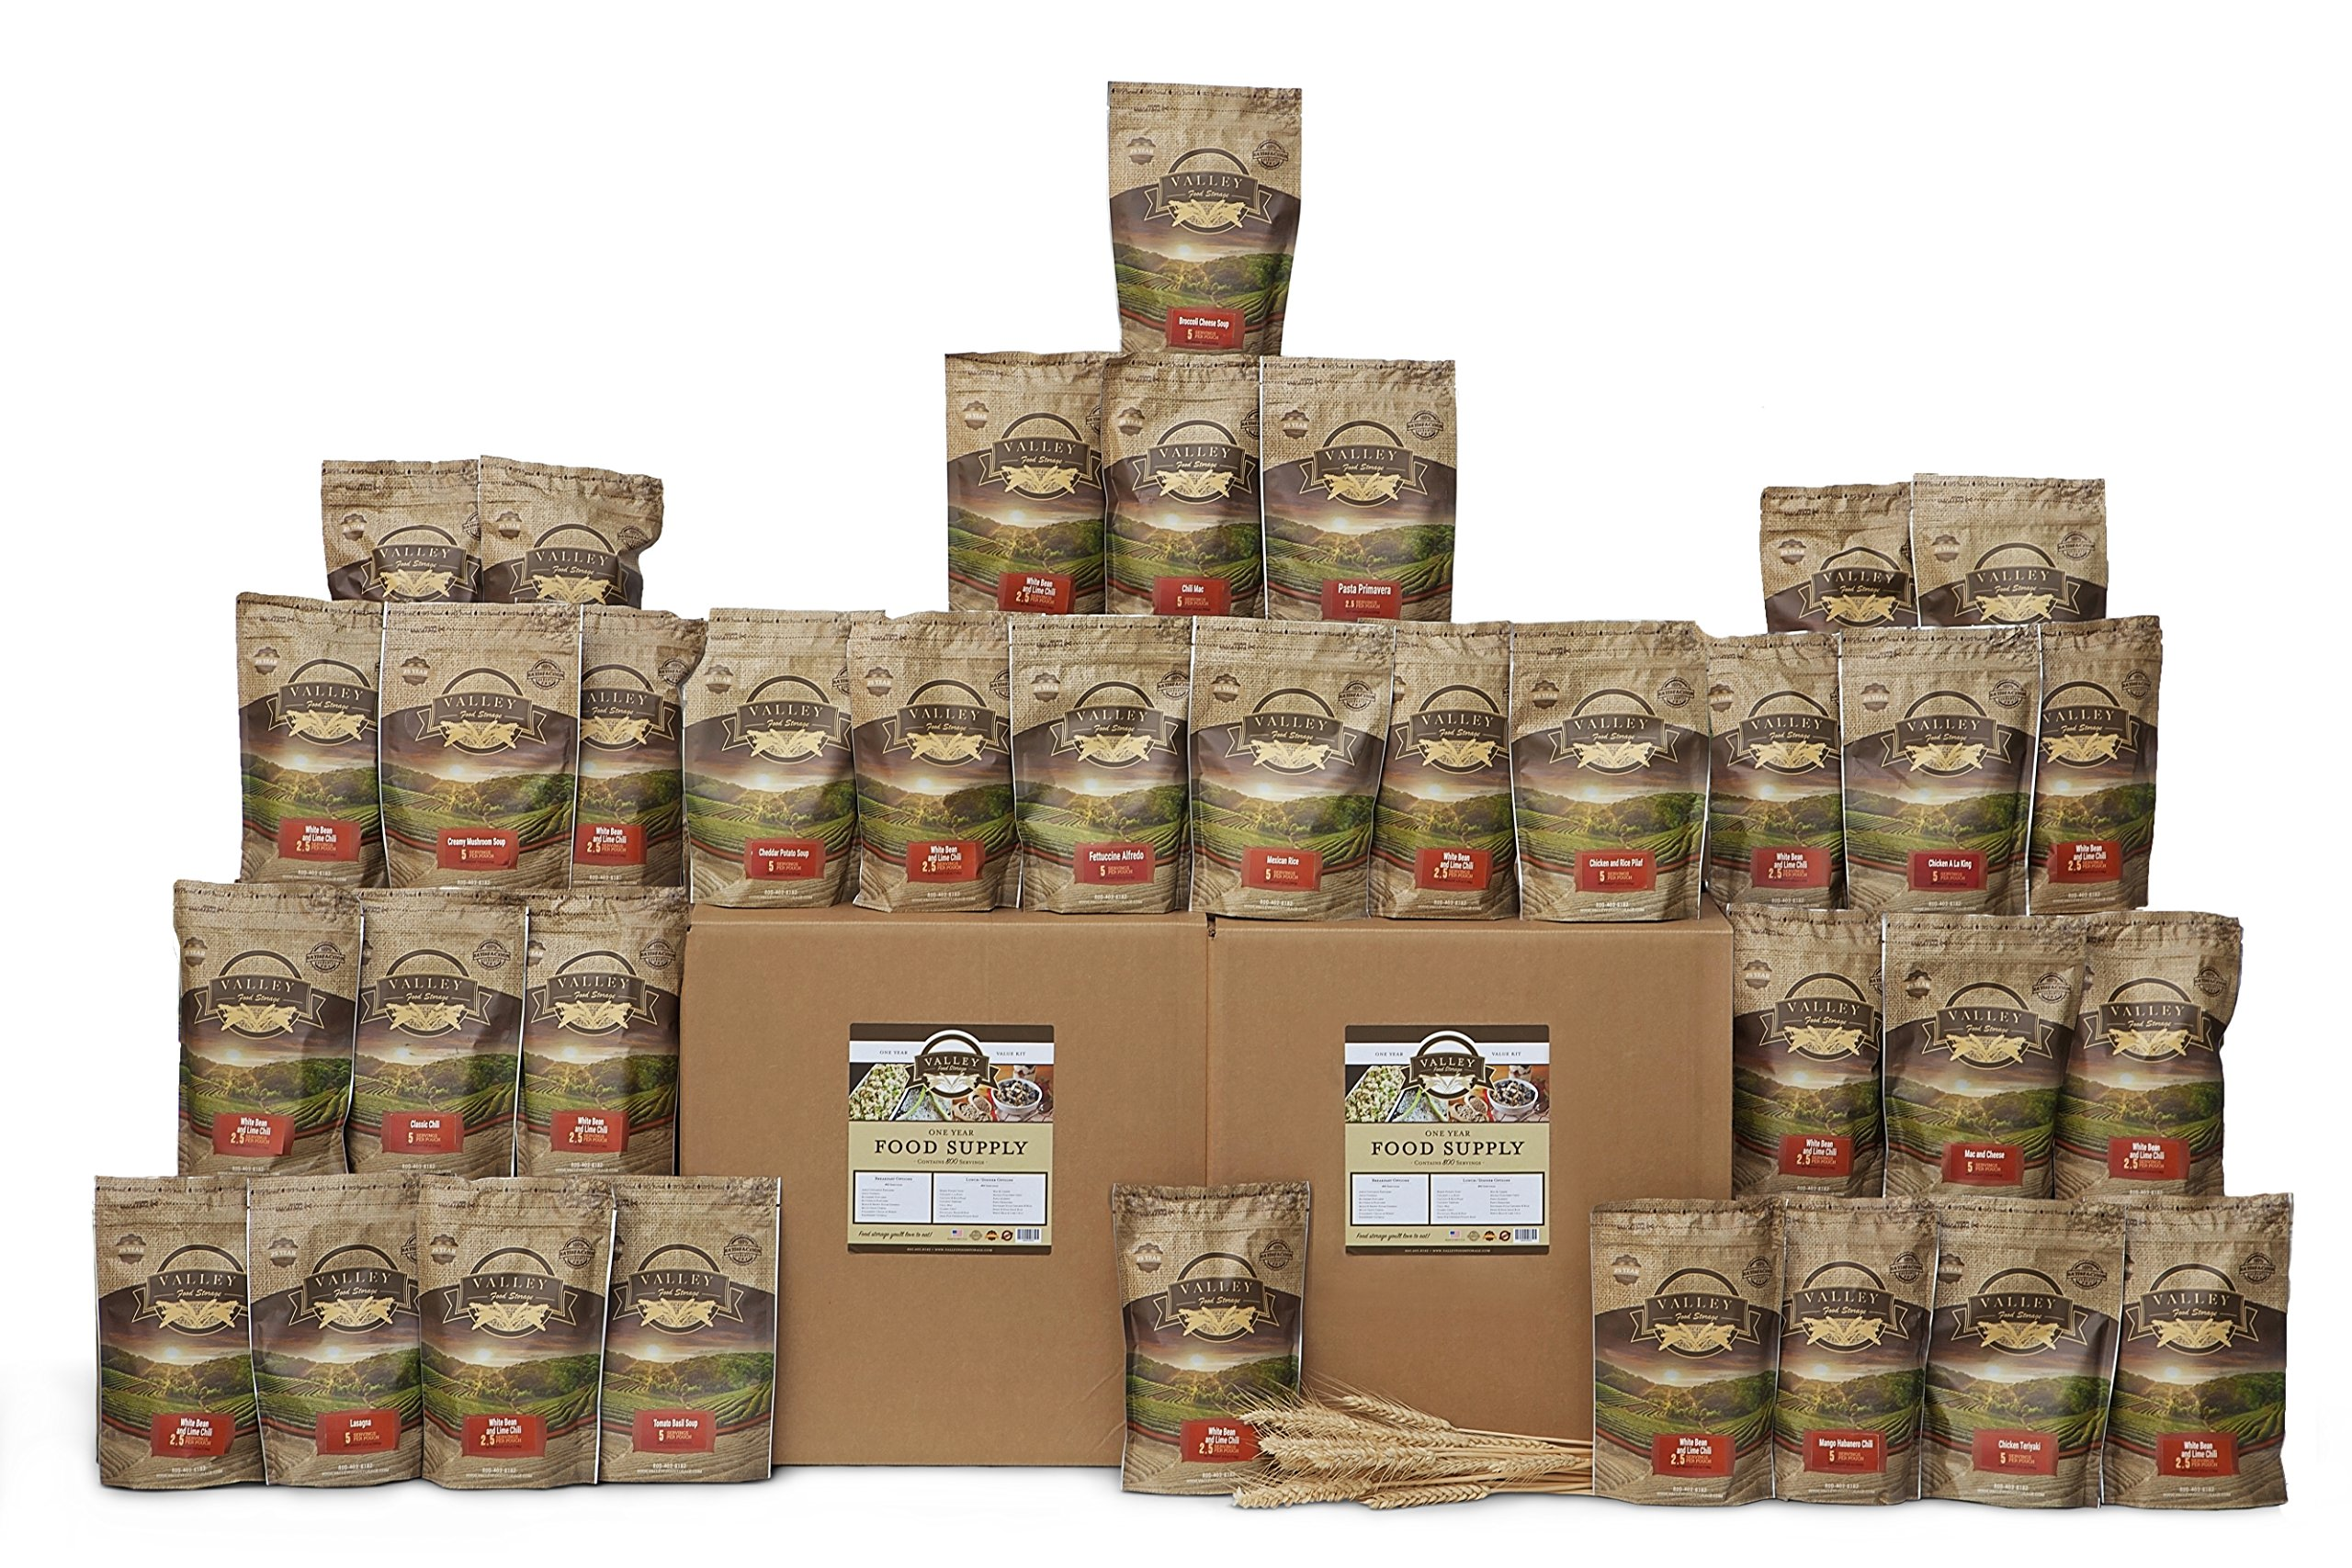 1 Year Value Long Term Pantry Supply of Healthy Freeze Dried Survival Food for Emergency Preparedness - Valley Food Storage…